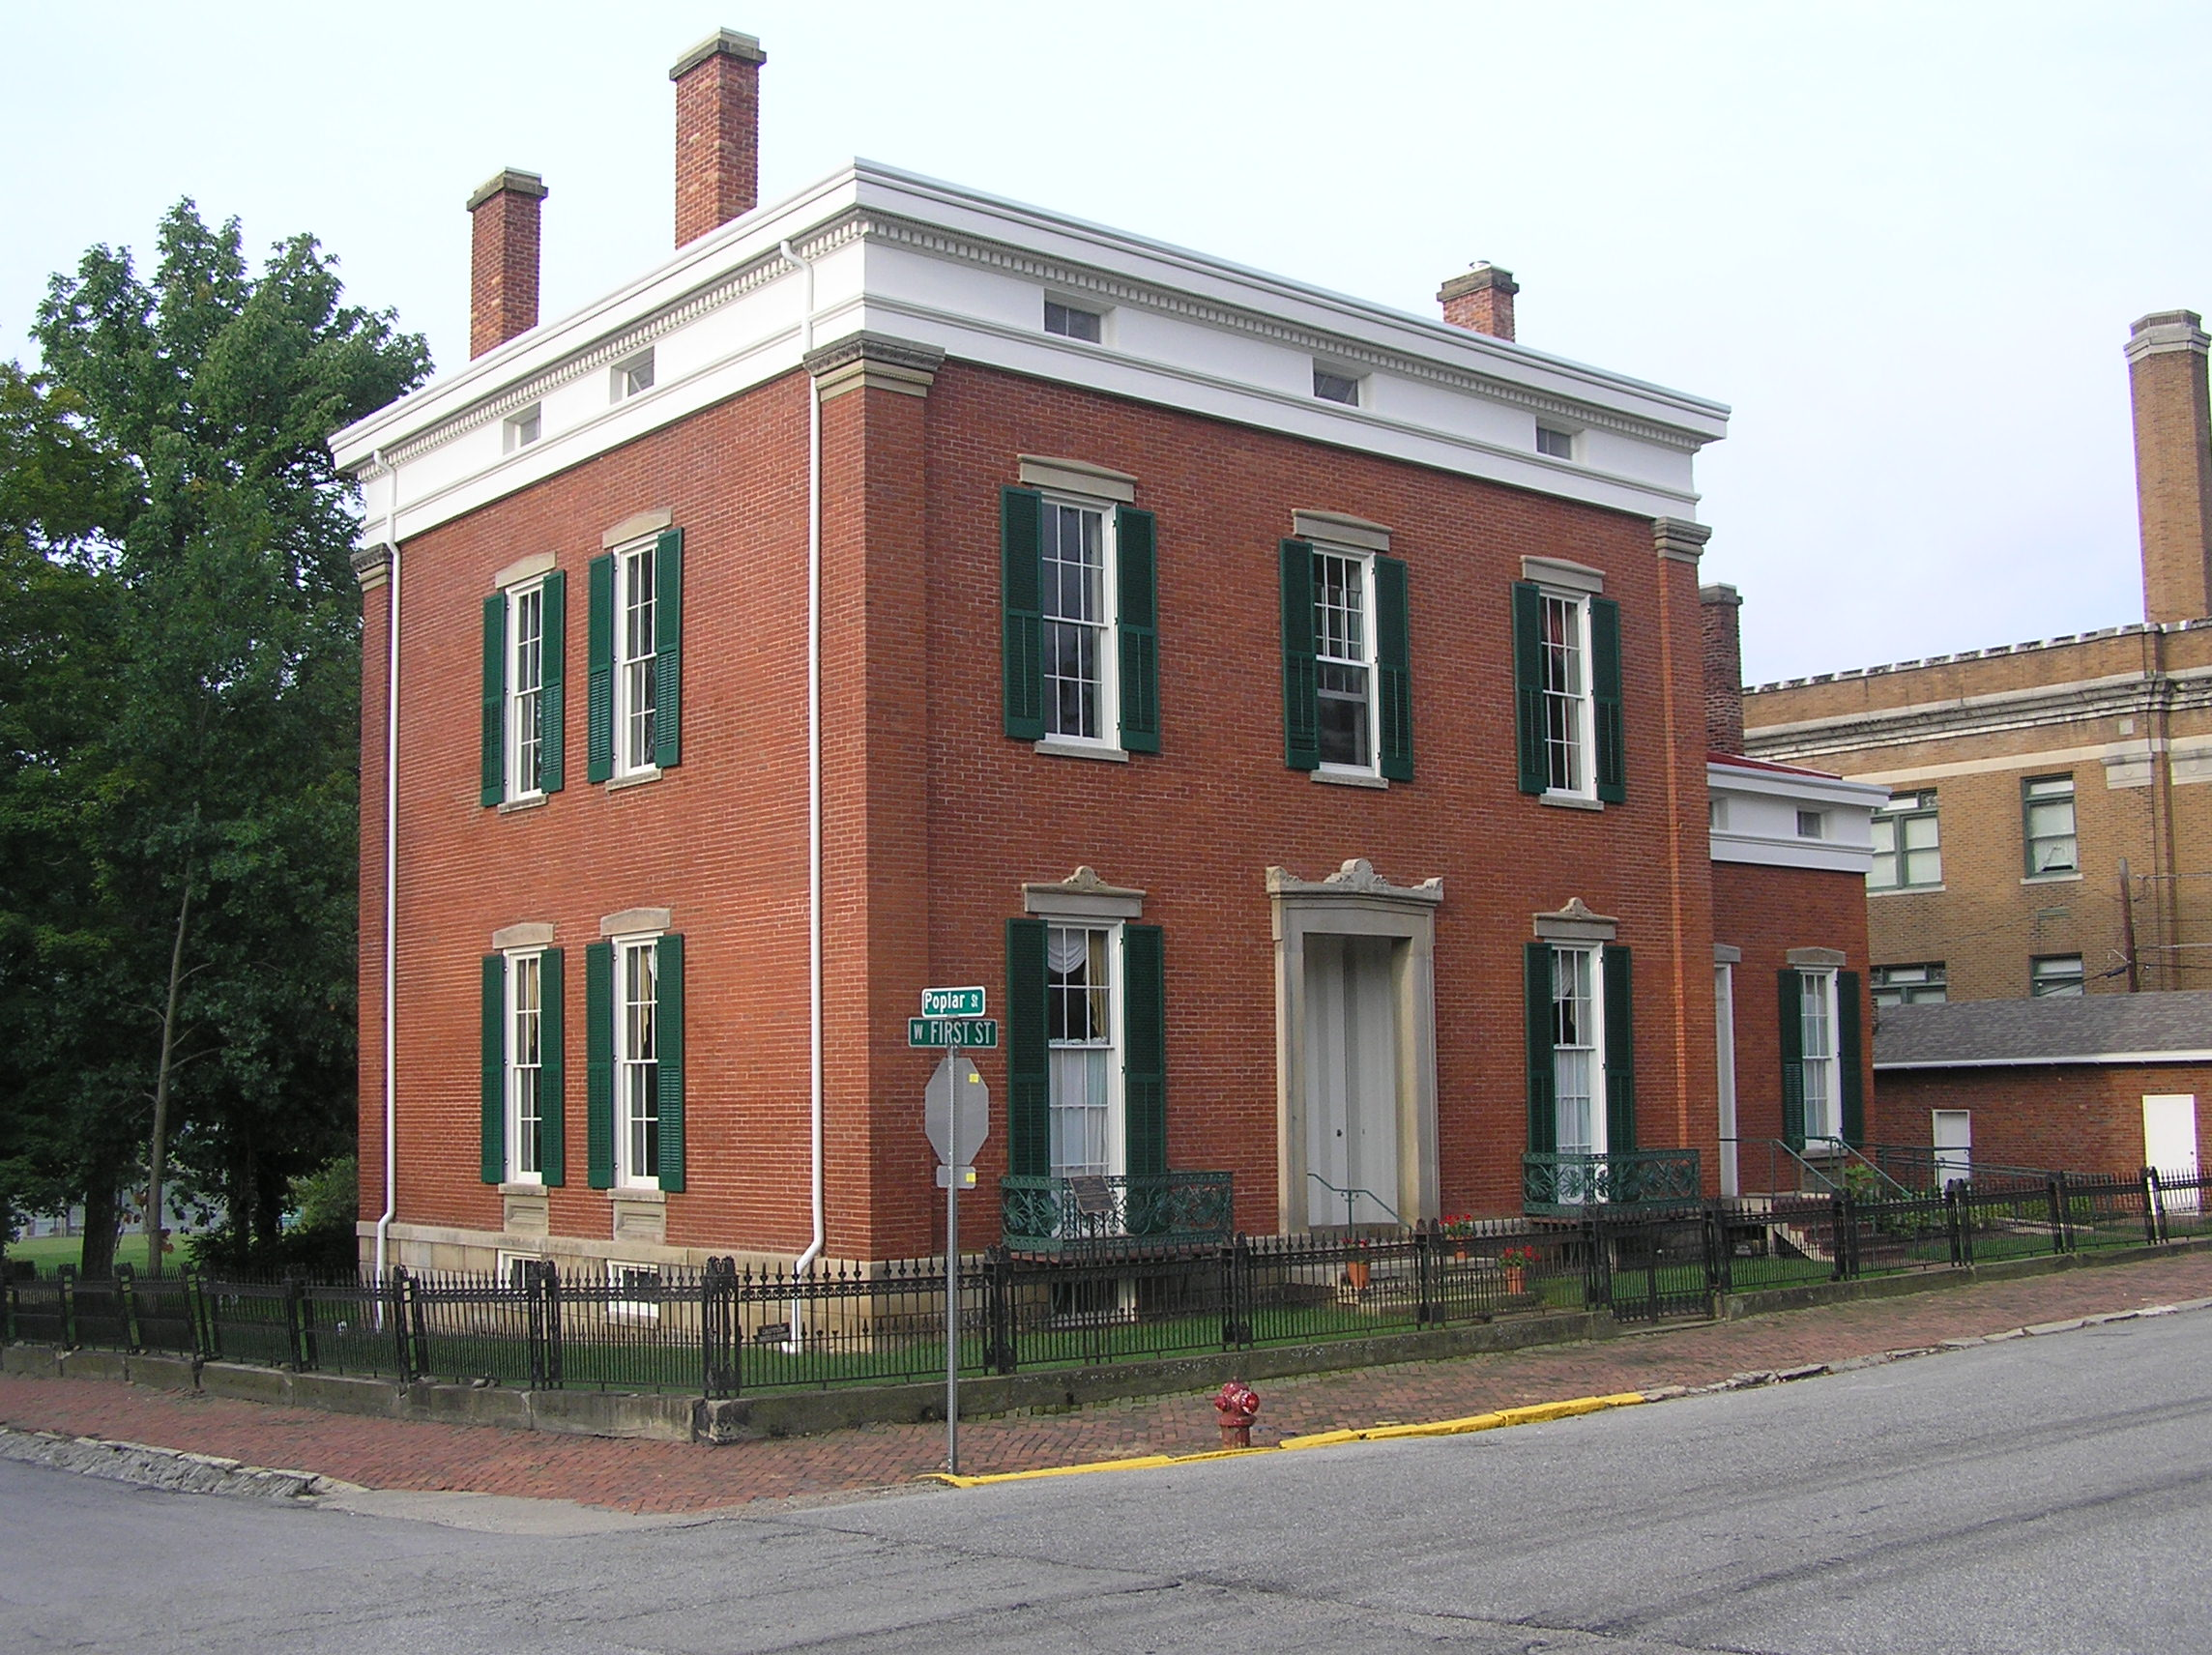 Looking Southwest of the Shrewsbury-Windle House, 2014 after exterior restoration. (HMI Collection)